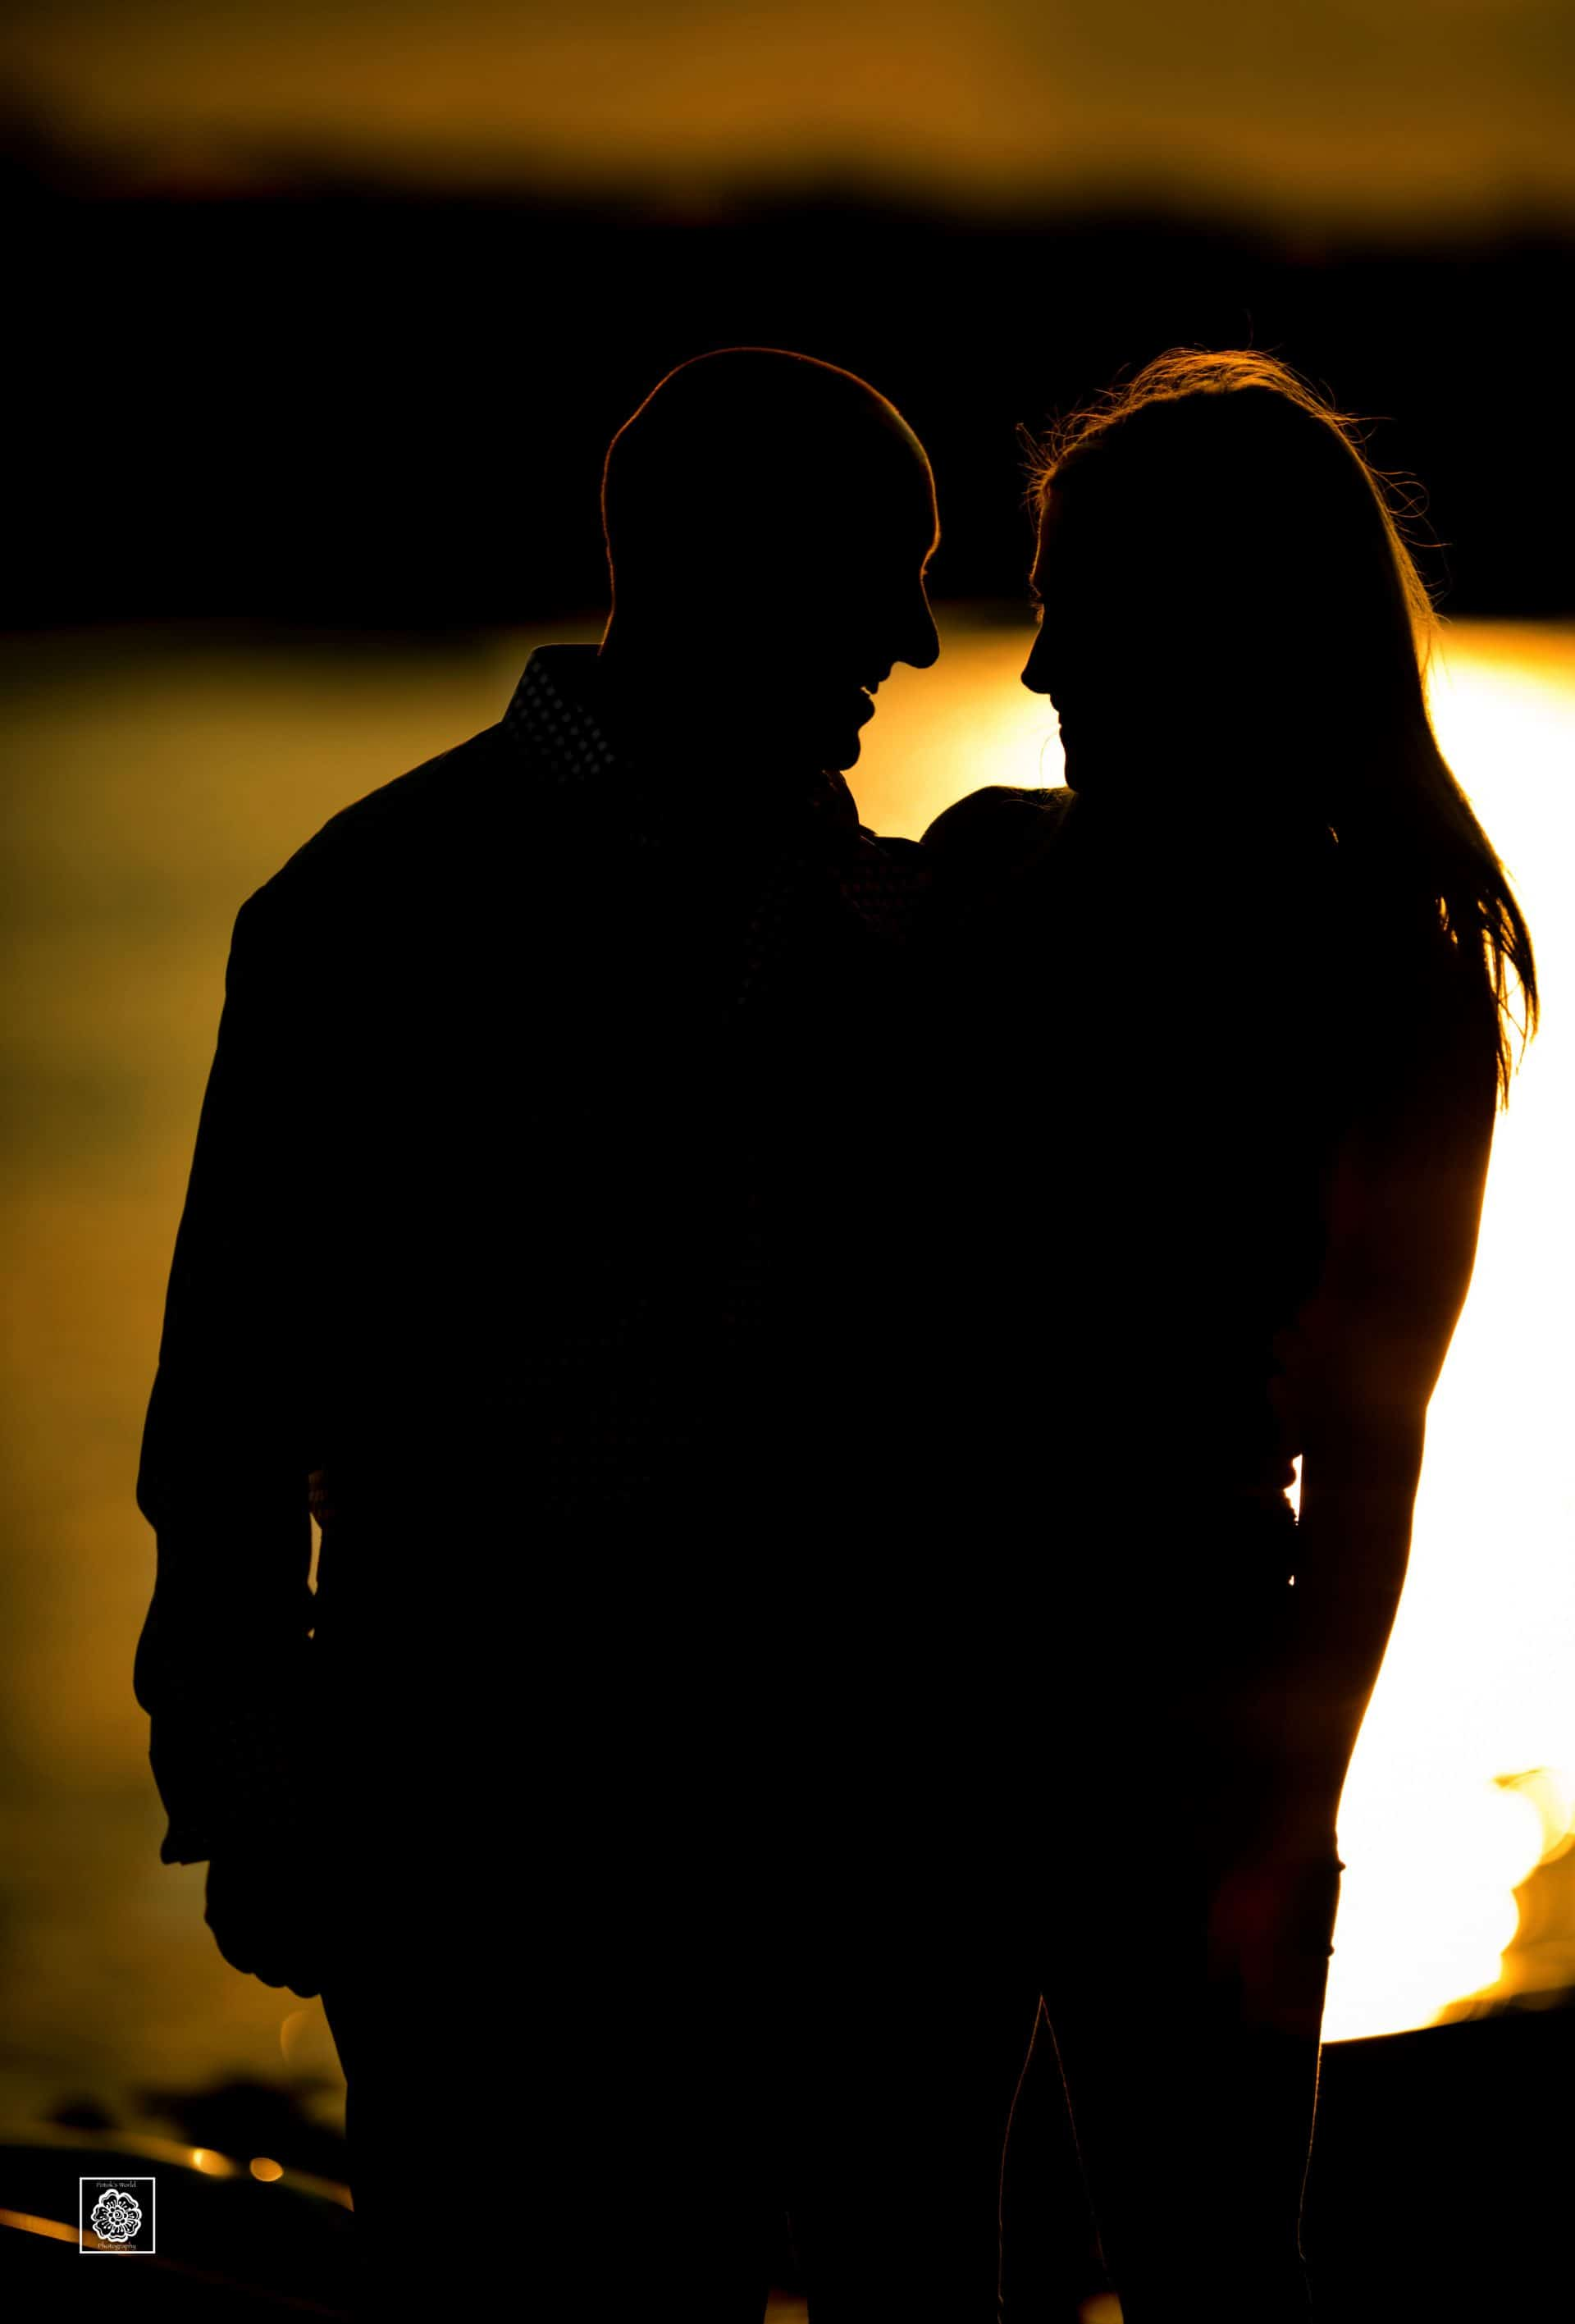 Sunset engagement photo silhouette at the Georgetown waterfront by DC wedding photographers of Potok's World Photography